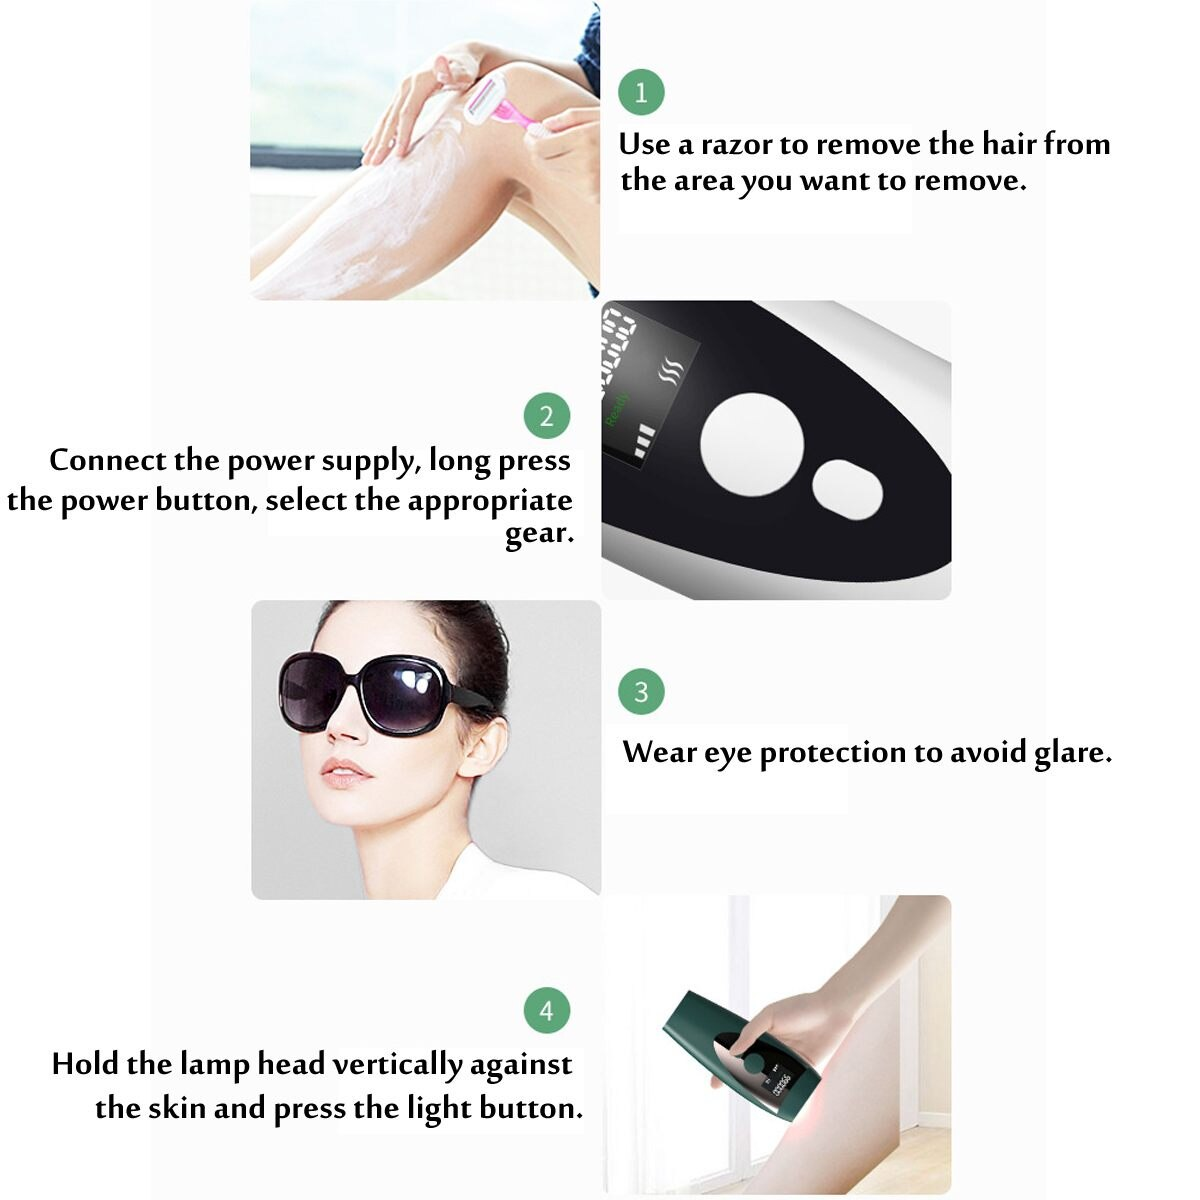 990000 flashes Laser Epilator Photoepilator LCD laser hair removal Household Device Men and Women Facial Private Parts Shaving enlarge